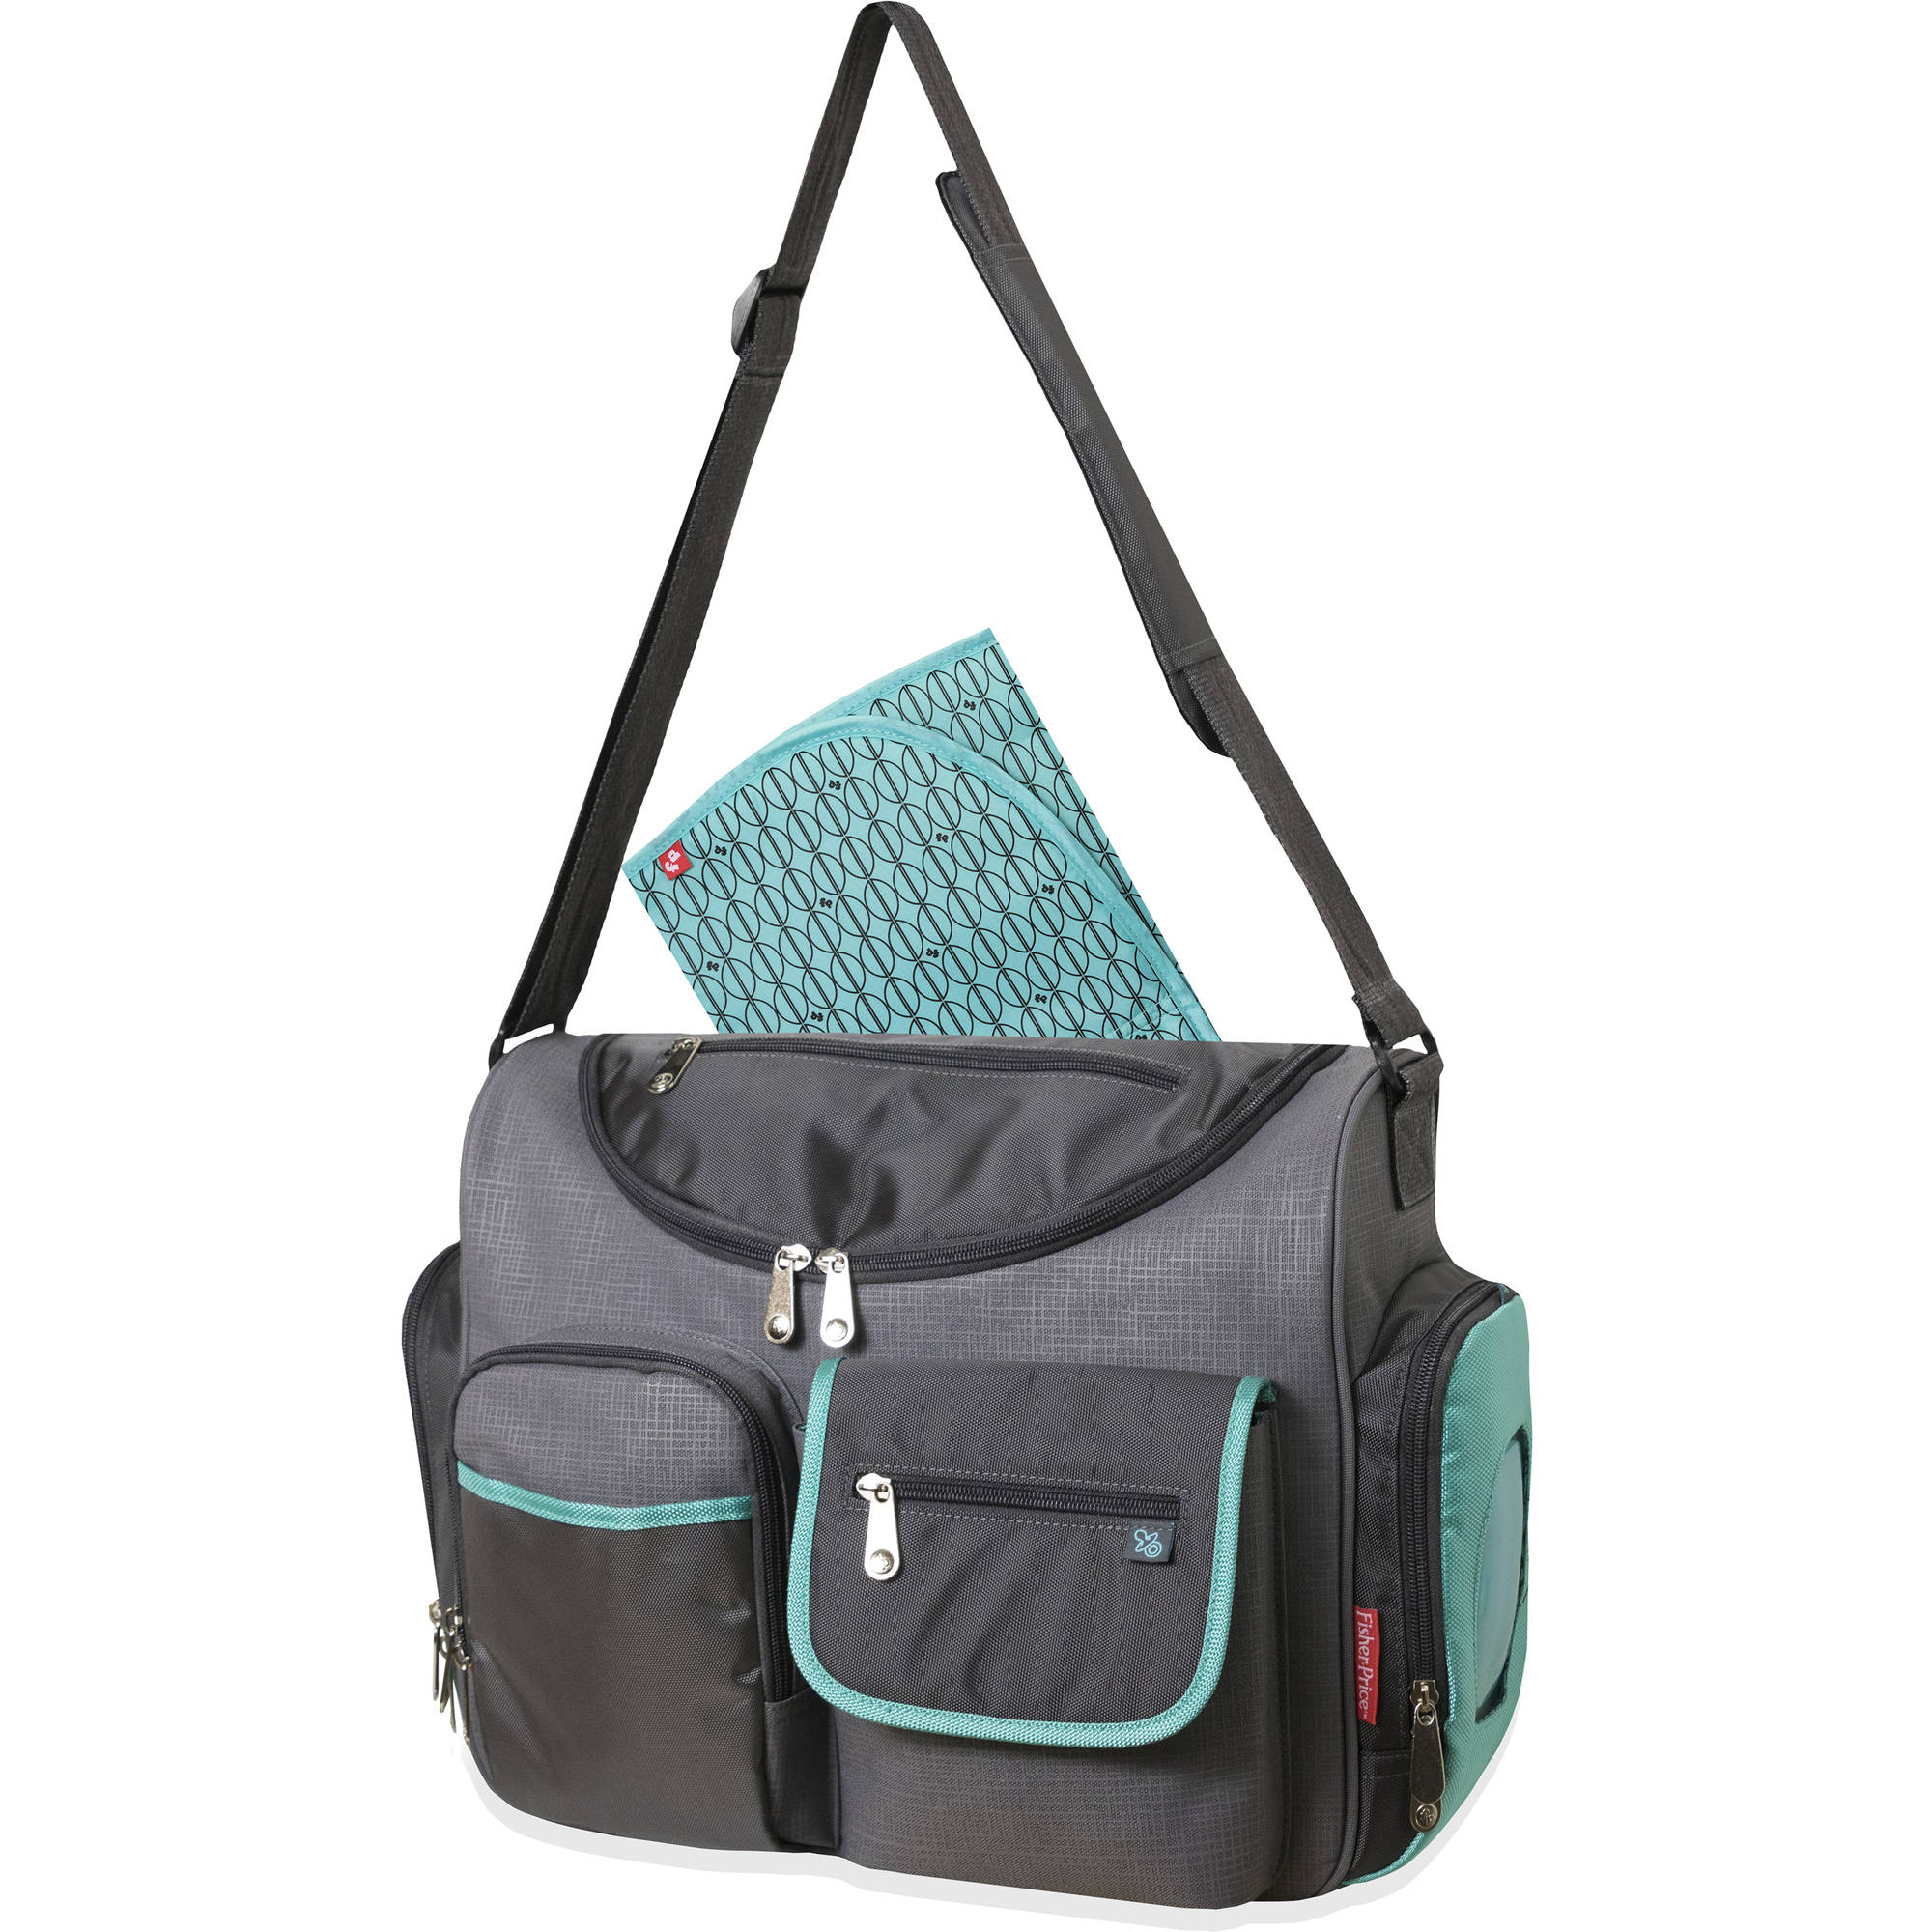 Fisher-Price Gray/Teal Wide Opening Diaper Bag - Walmart.com